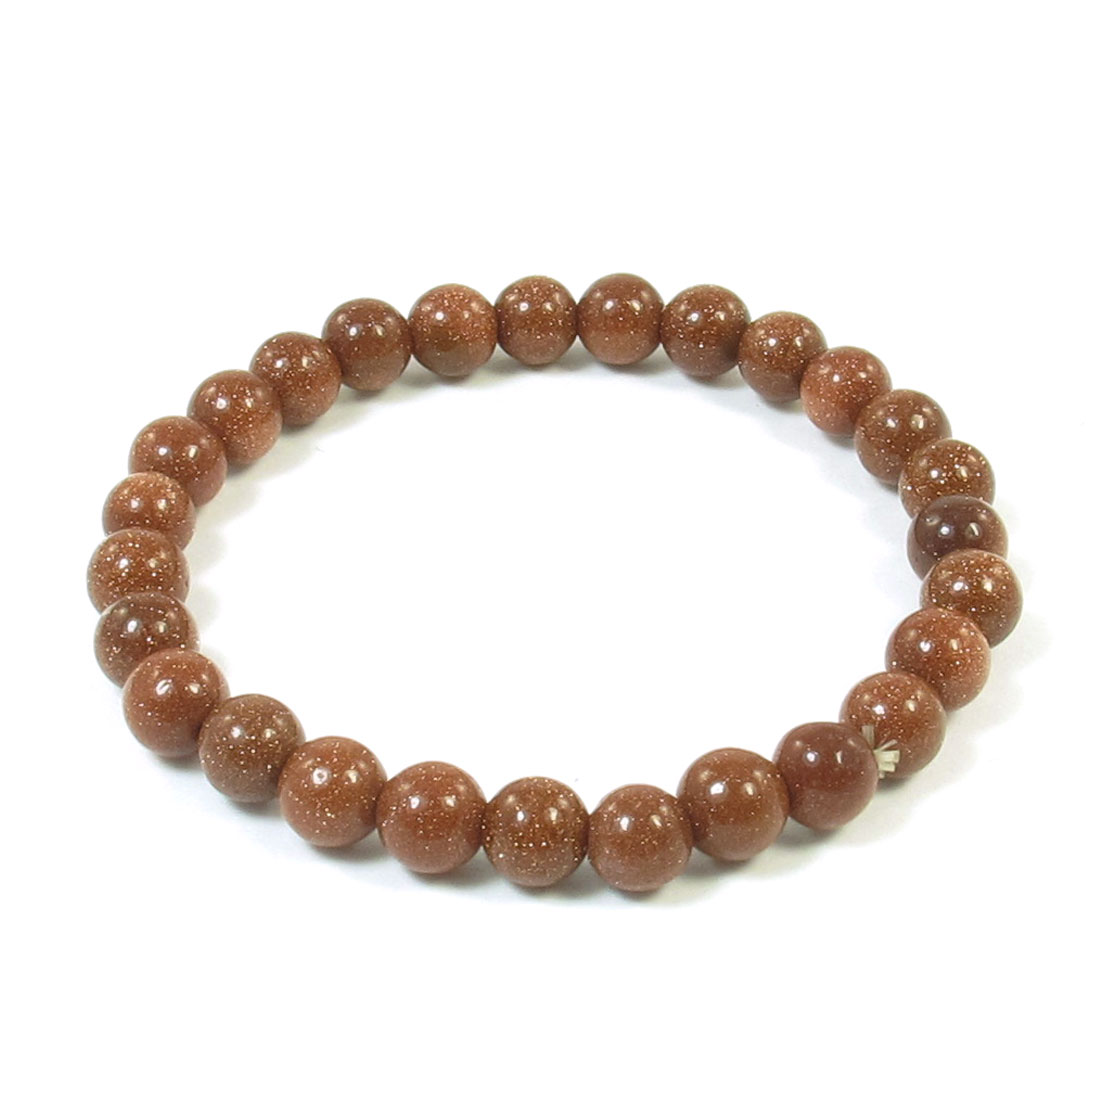 6mm Brown Round Plastic Goldstone Beads Bunch Elasticated Bracelet for Ladies